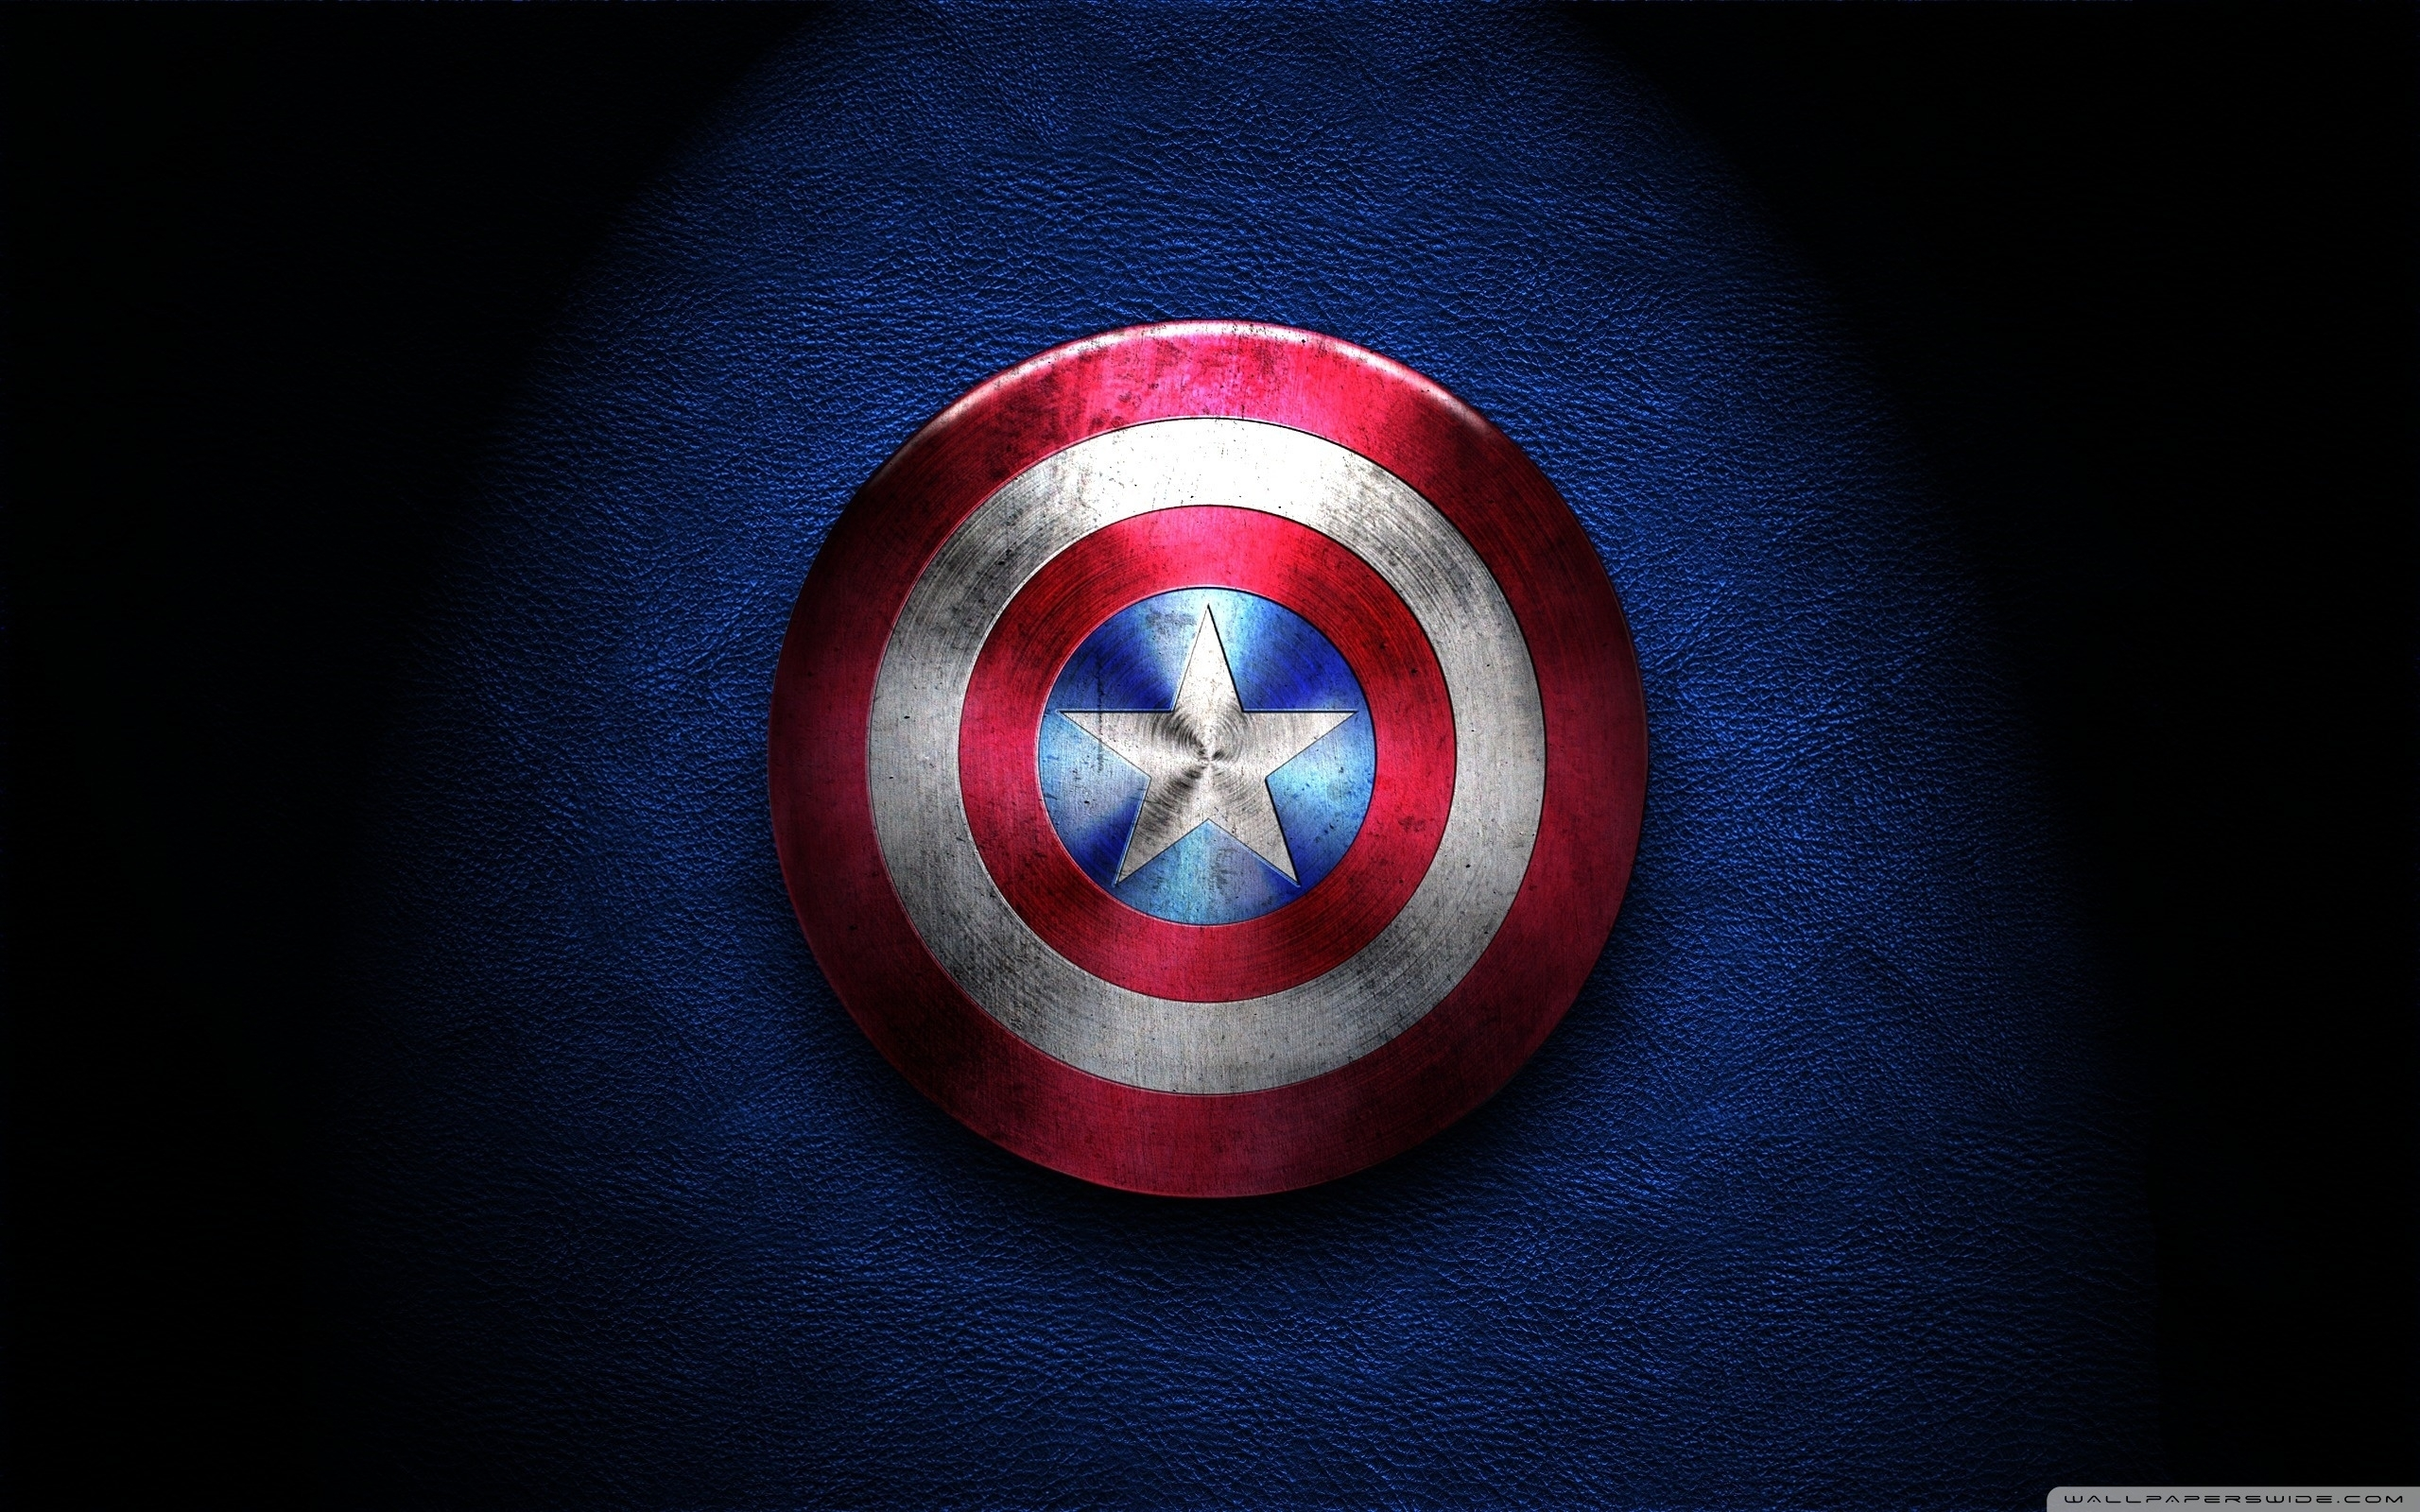 captain america shield ❤ 4k hd desktop wallpaper for 4k ultra hd tv